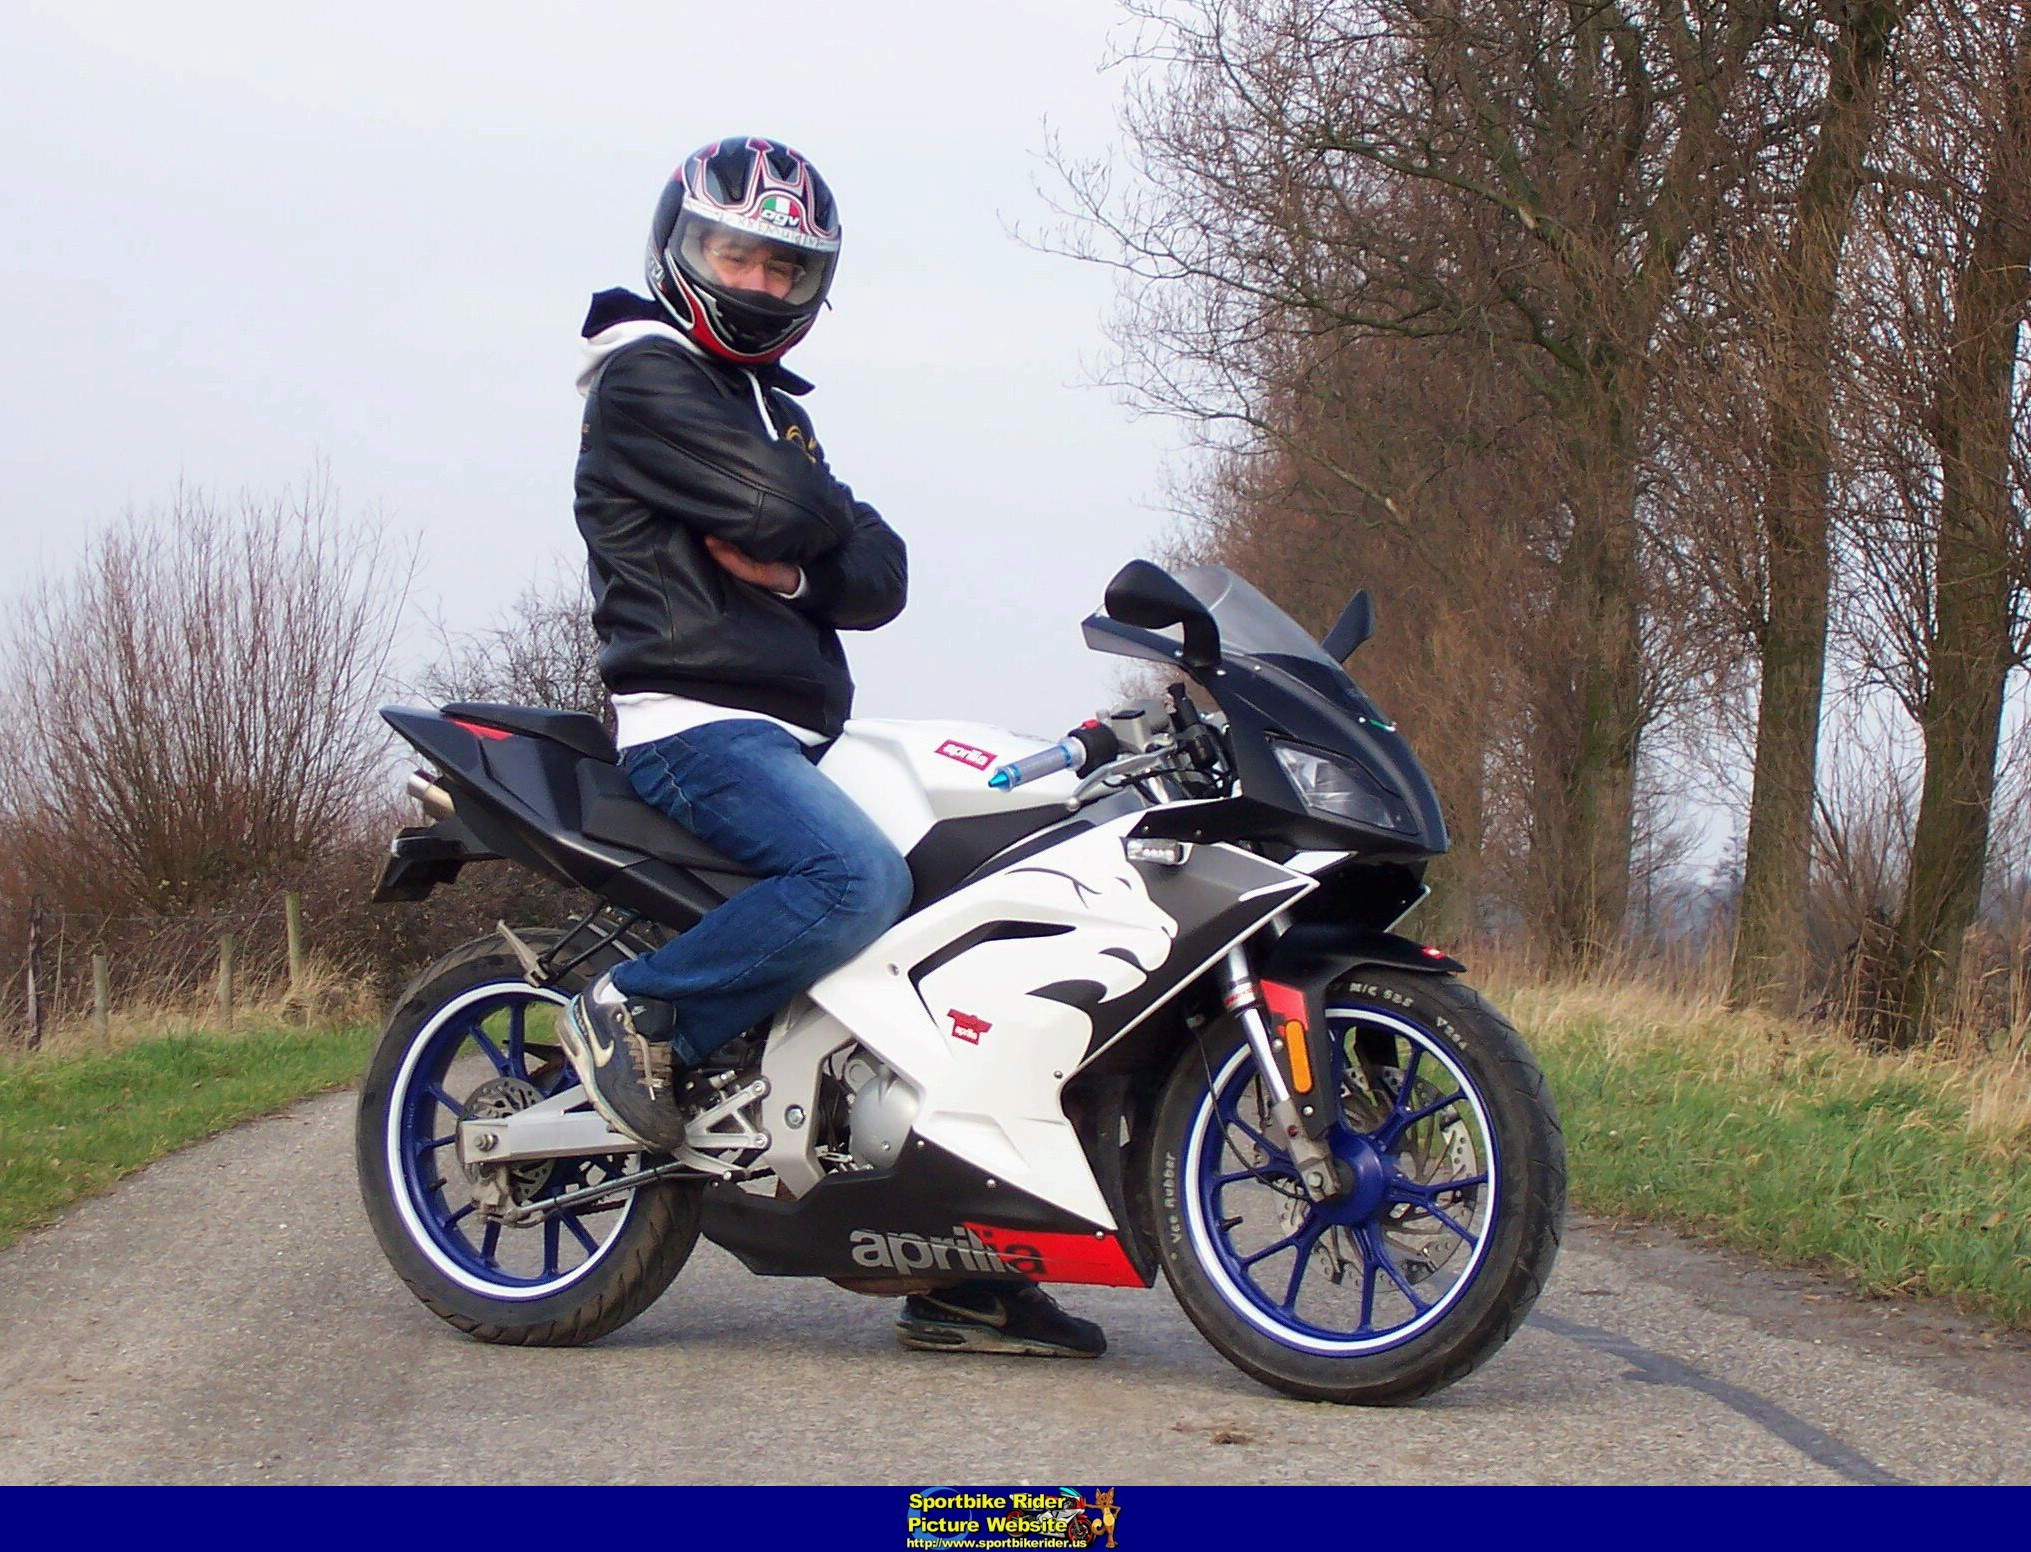 2009 Cagiva Mito 125 moreover New 2018 Vespa Gts 300 Super Sport in addition 2009 Mbk Booster Scooter Pictures as well 2014 Honda Cb 650 F moreover 2007 Aprilia Rs 50. on aprilia 2 cylinder